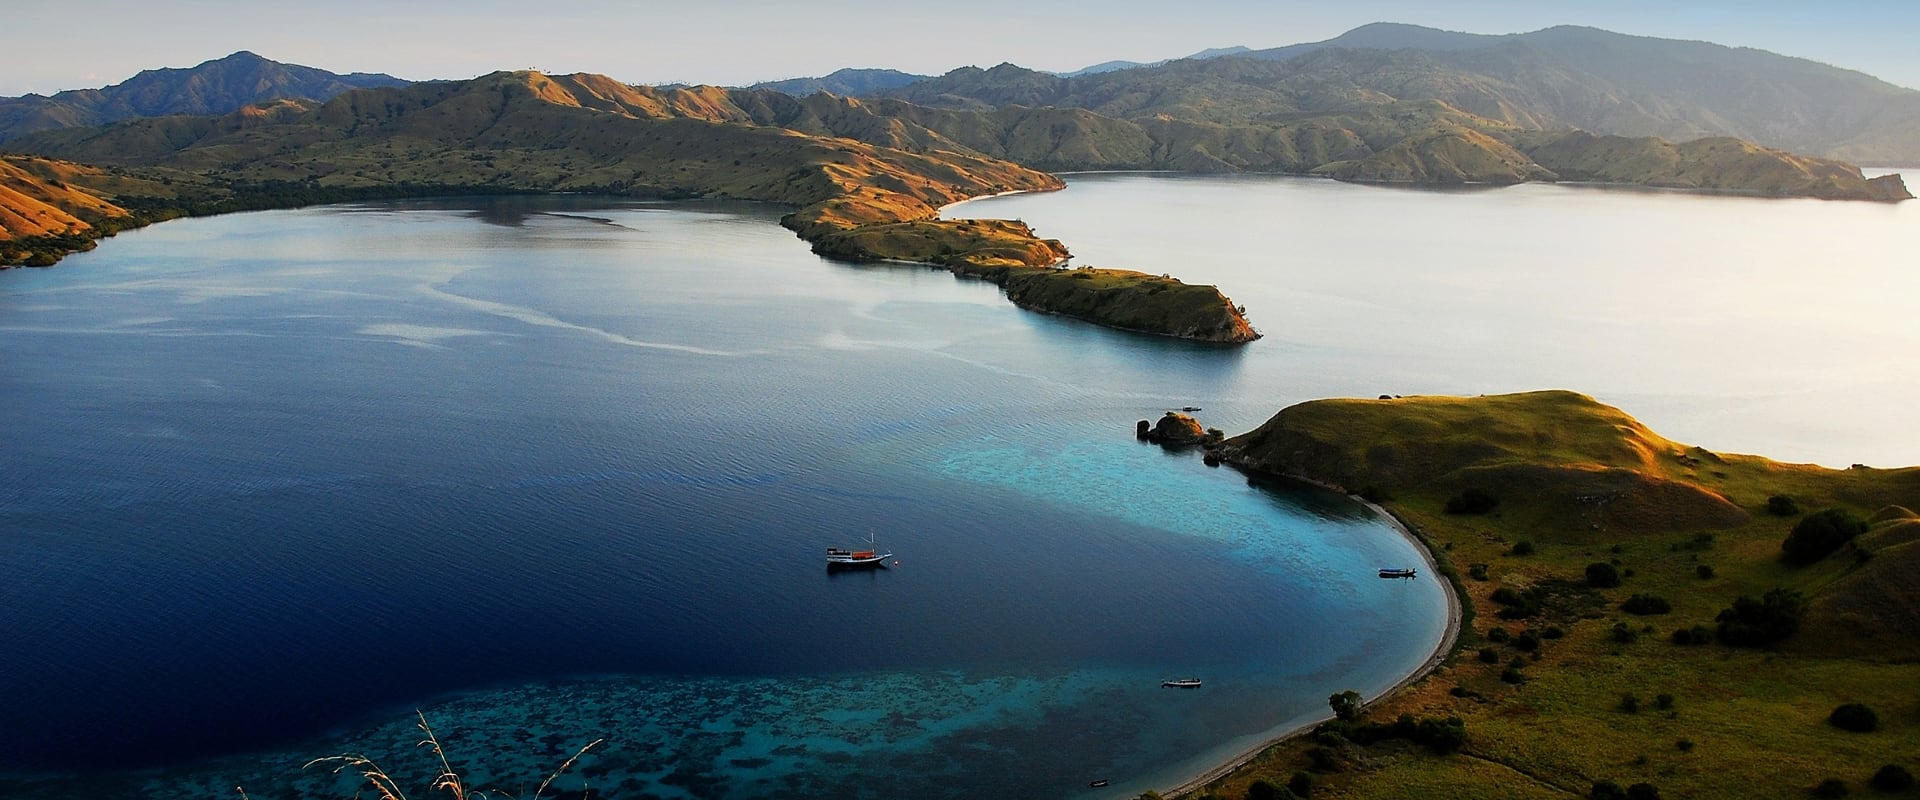 Komodo National Park Liveaboard Diving